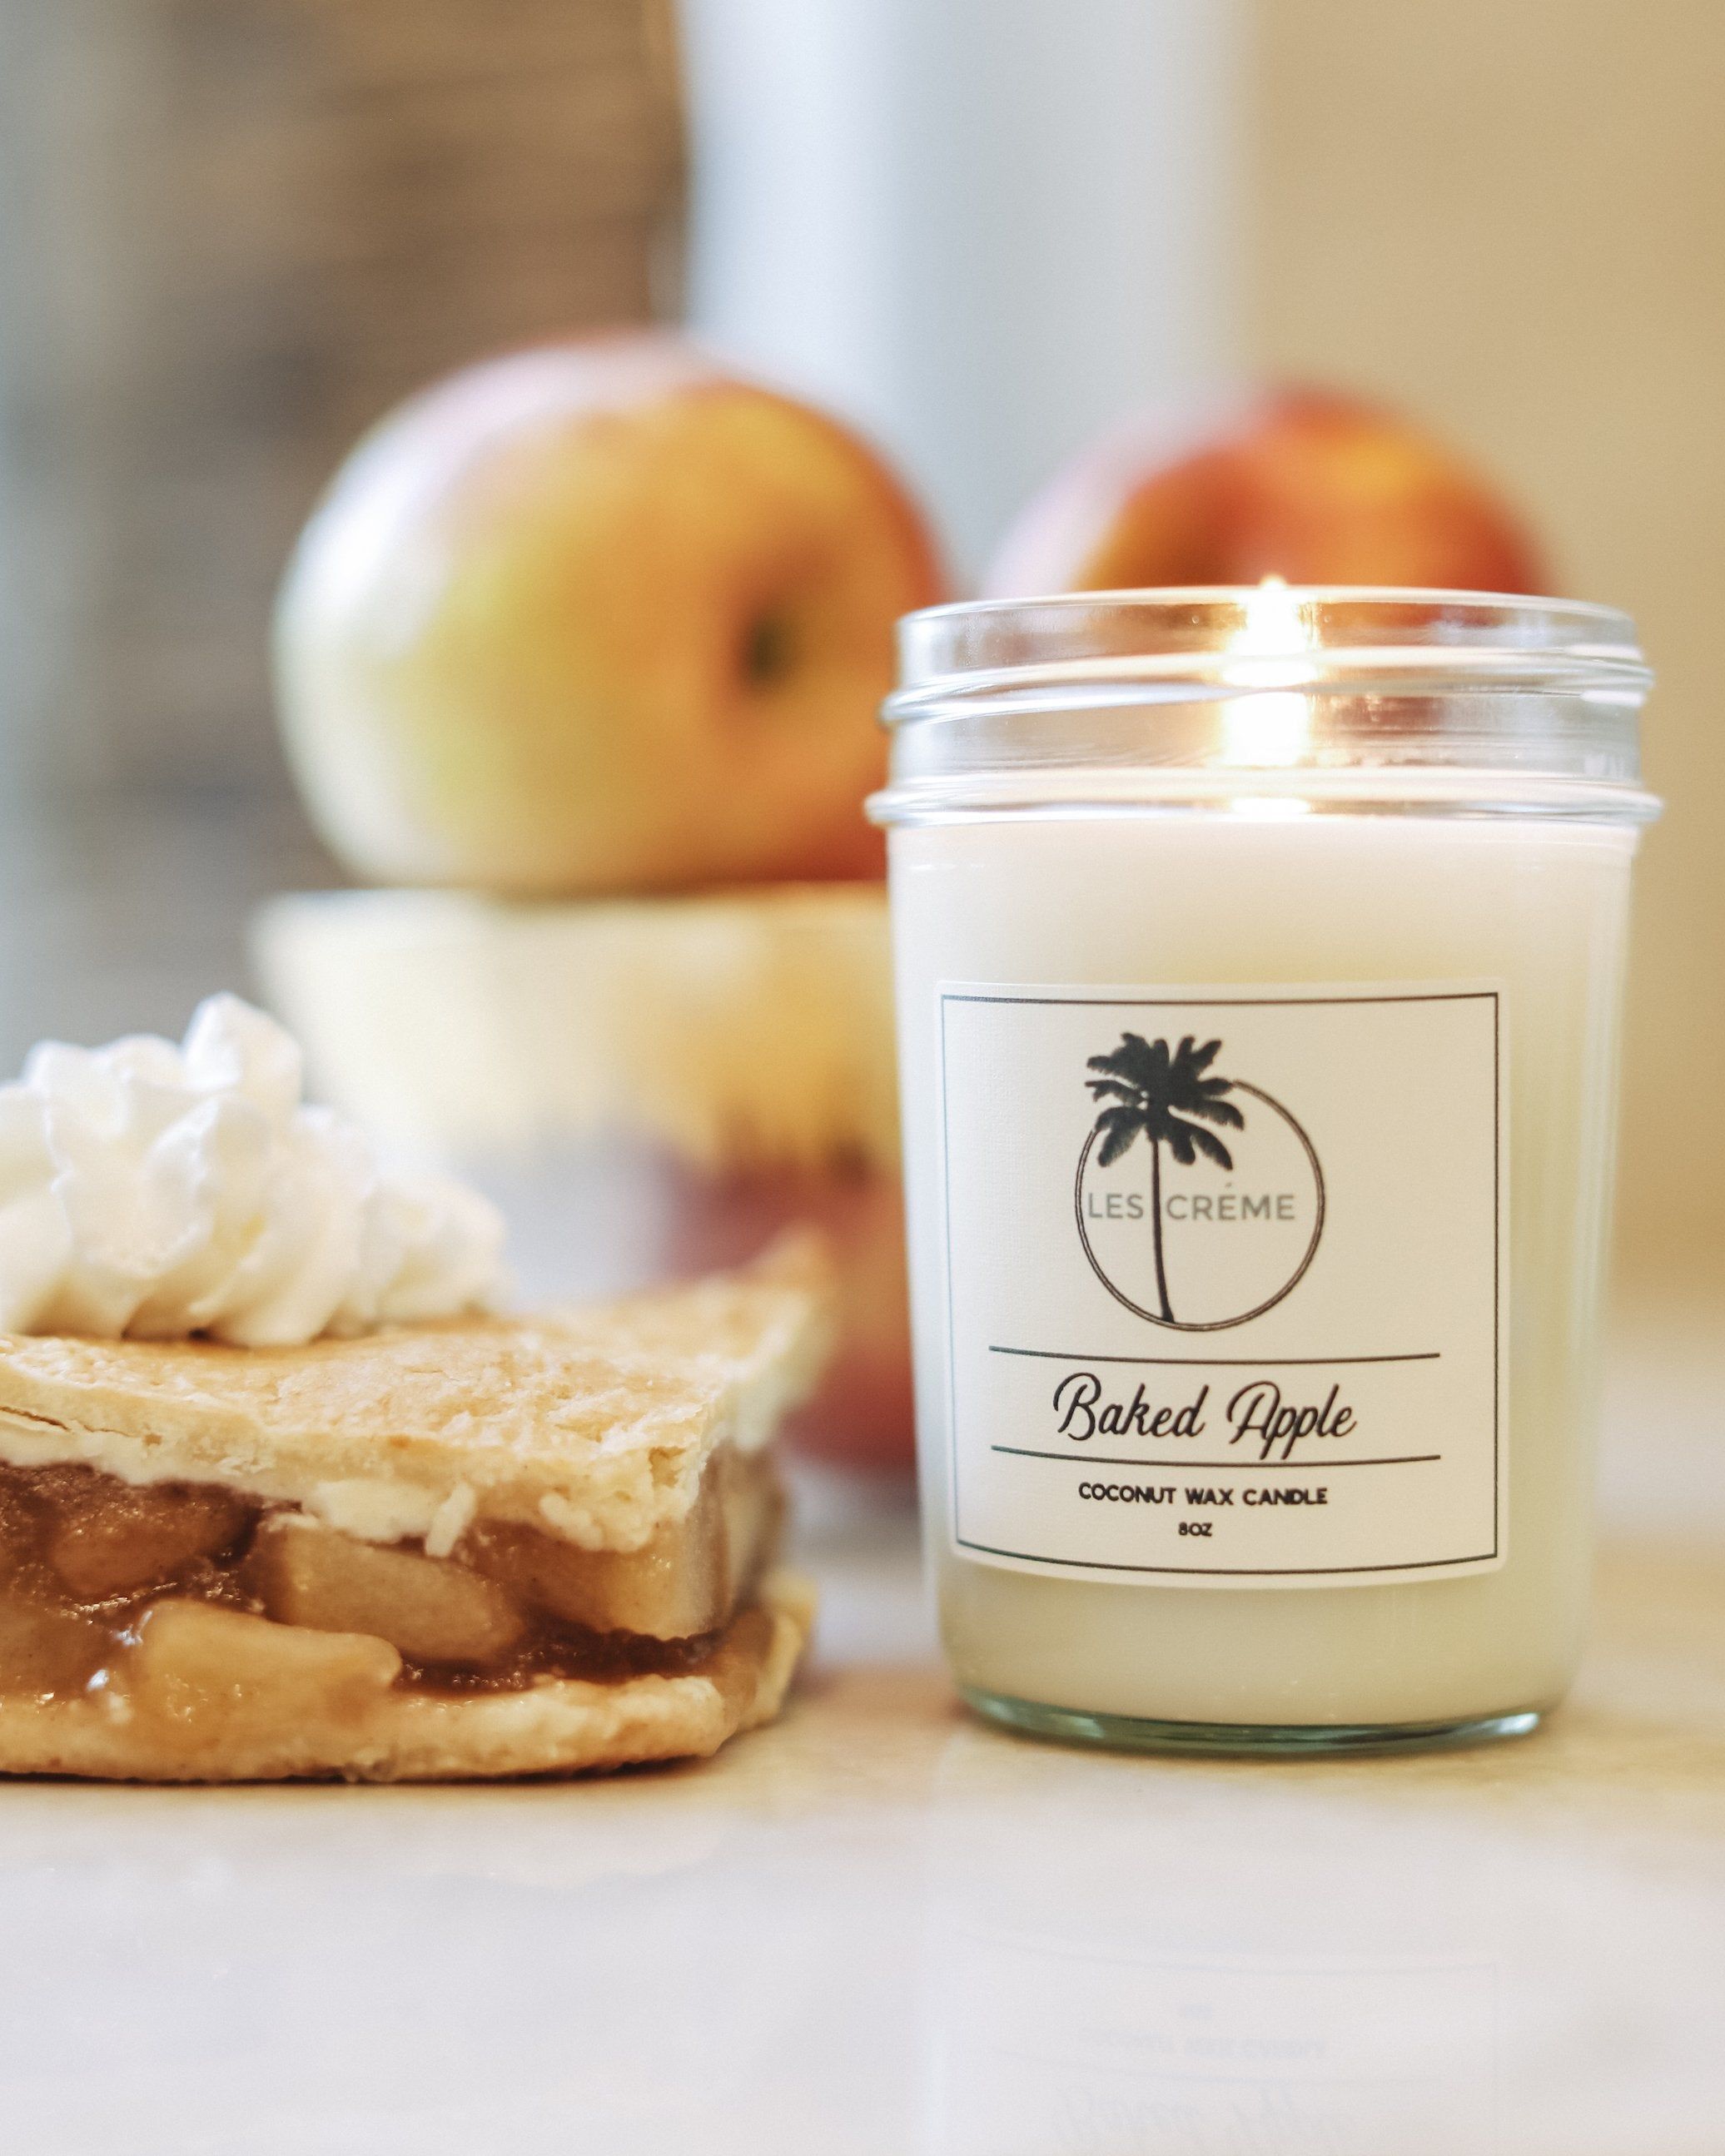 Baked Apple Scent Coconut Wax Candle - Zip & Mos